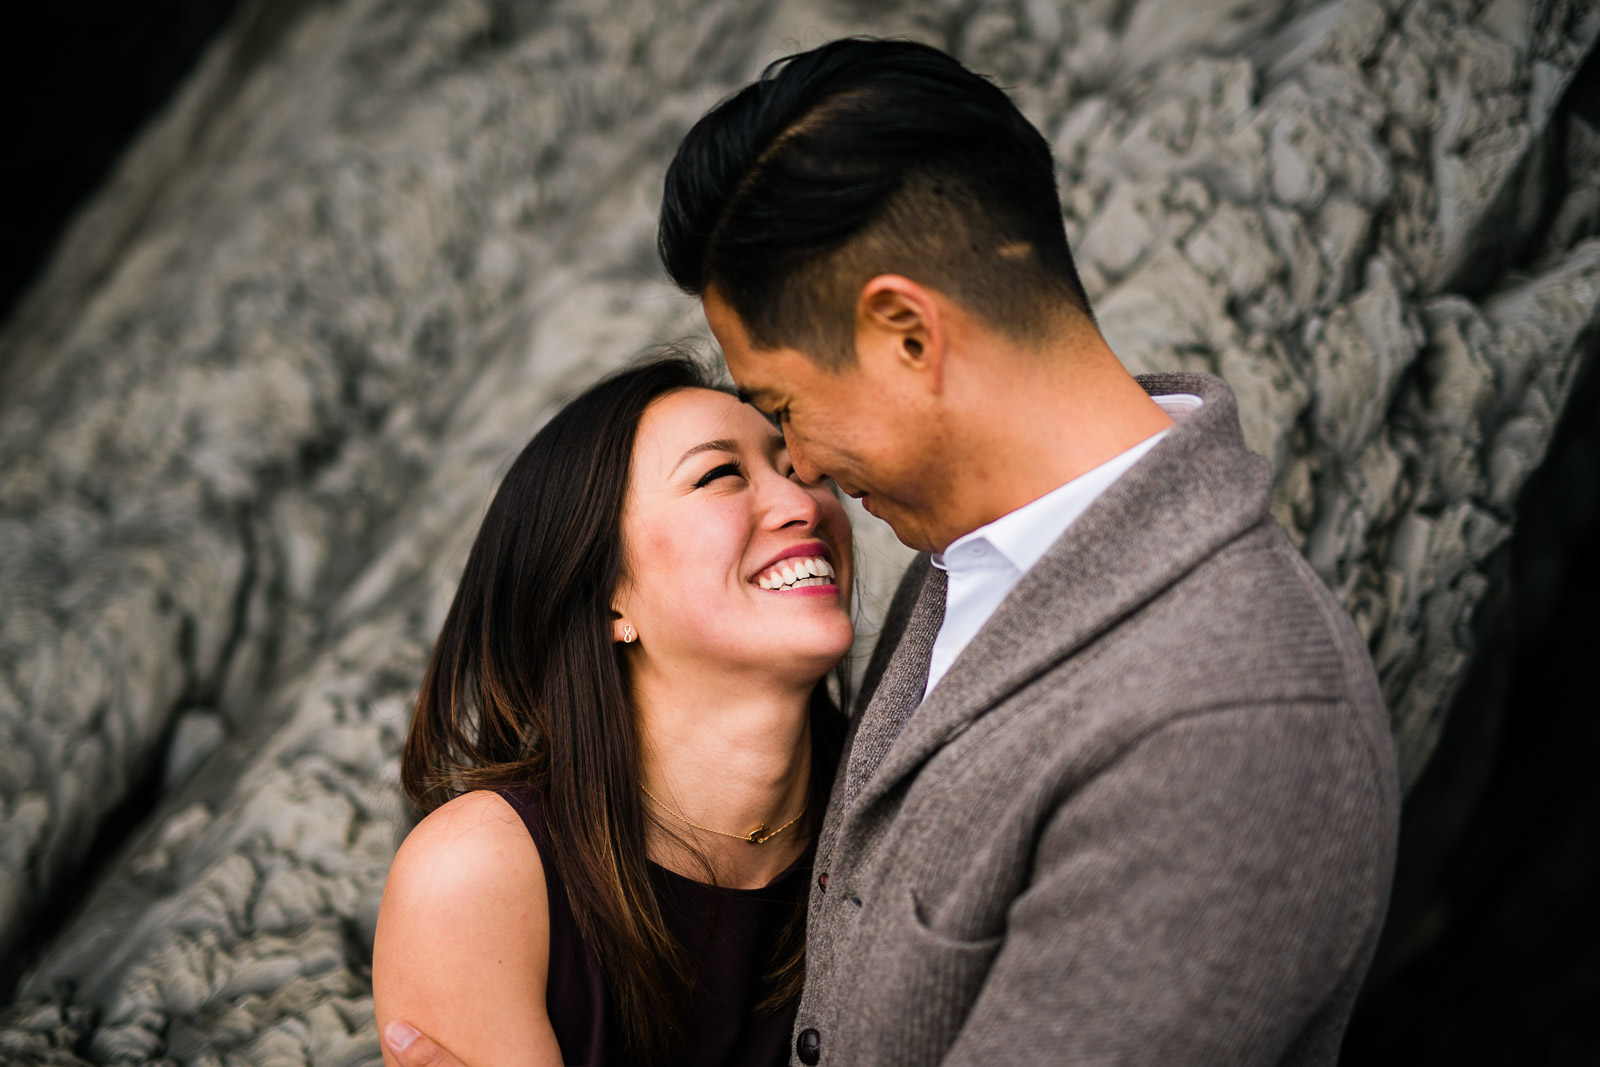 Jackie_Simon_Iceland_Elopement_Weddings_MJ_Studios-59